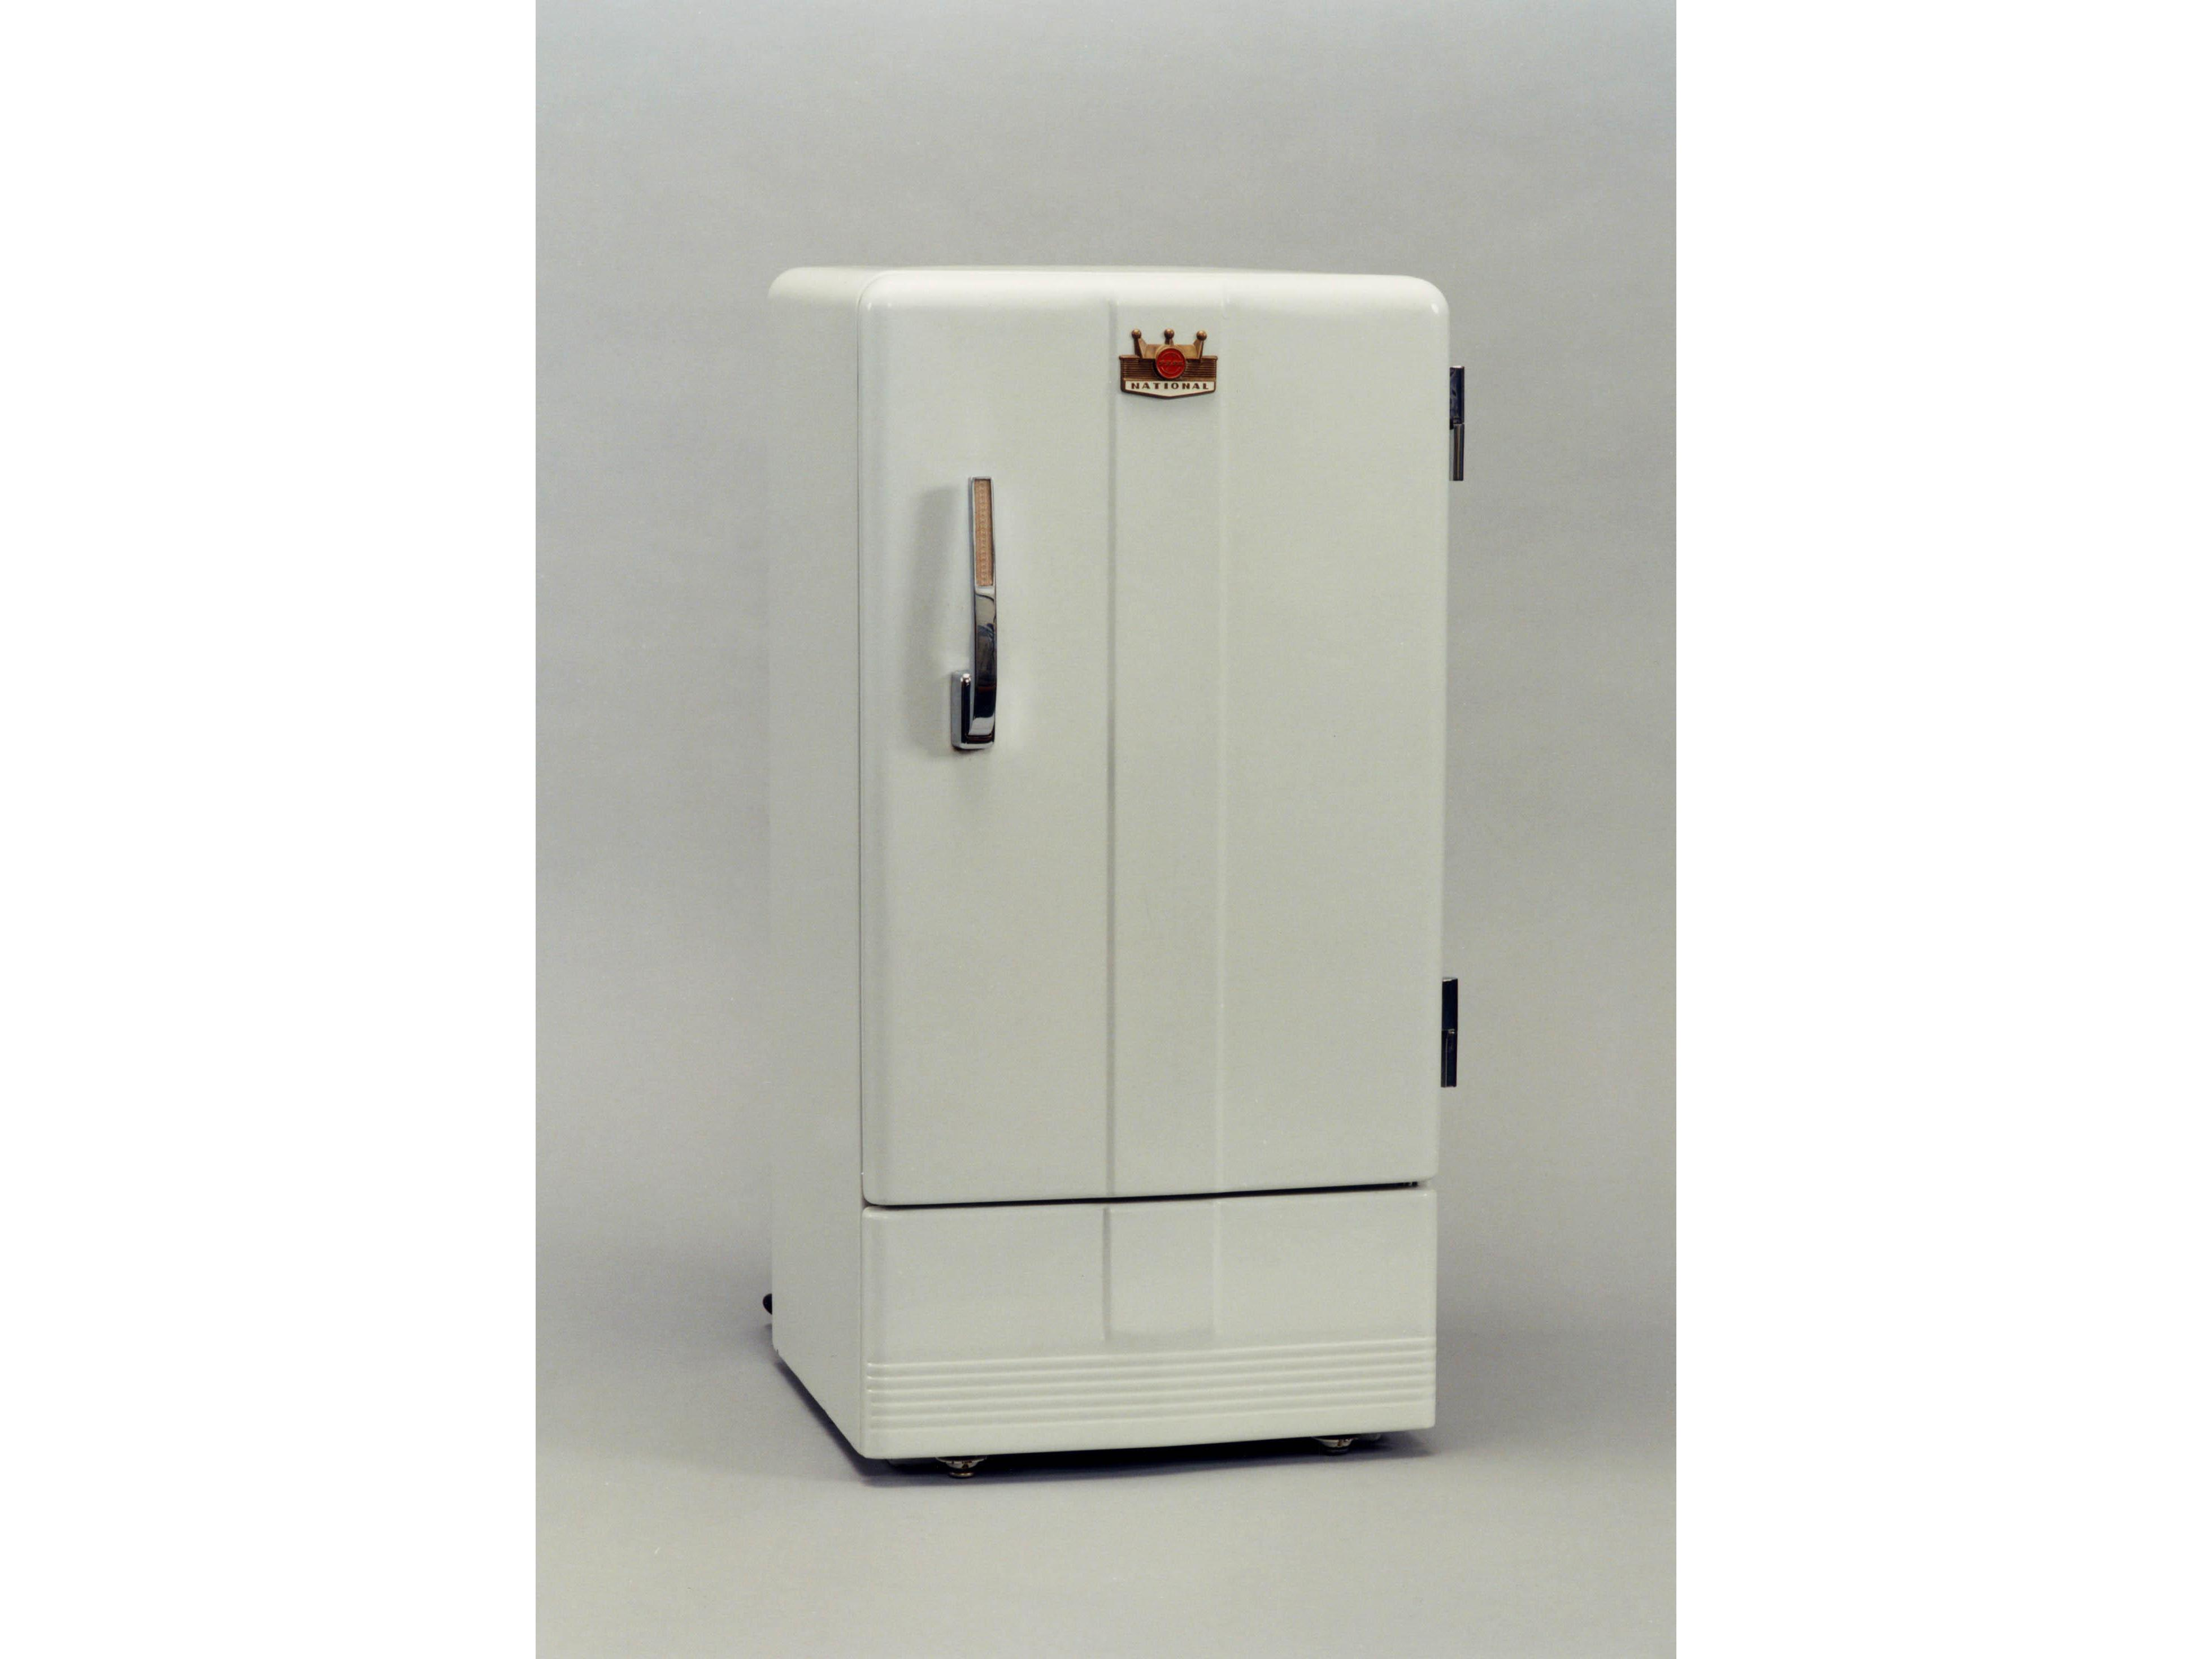 photo: The NR-351, the first household refrigerator model